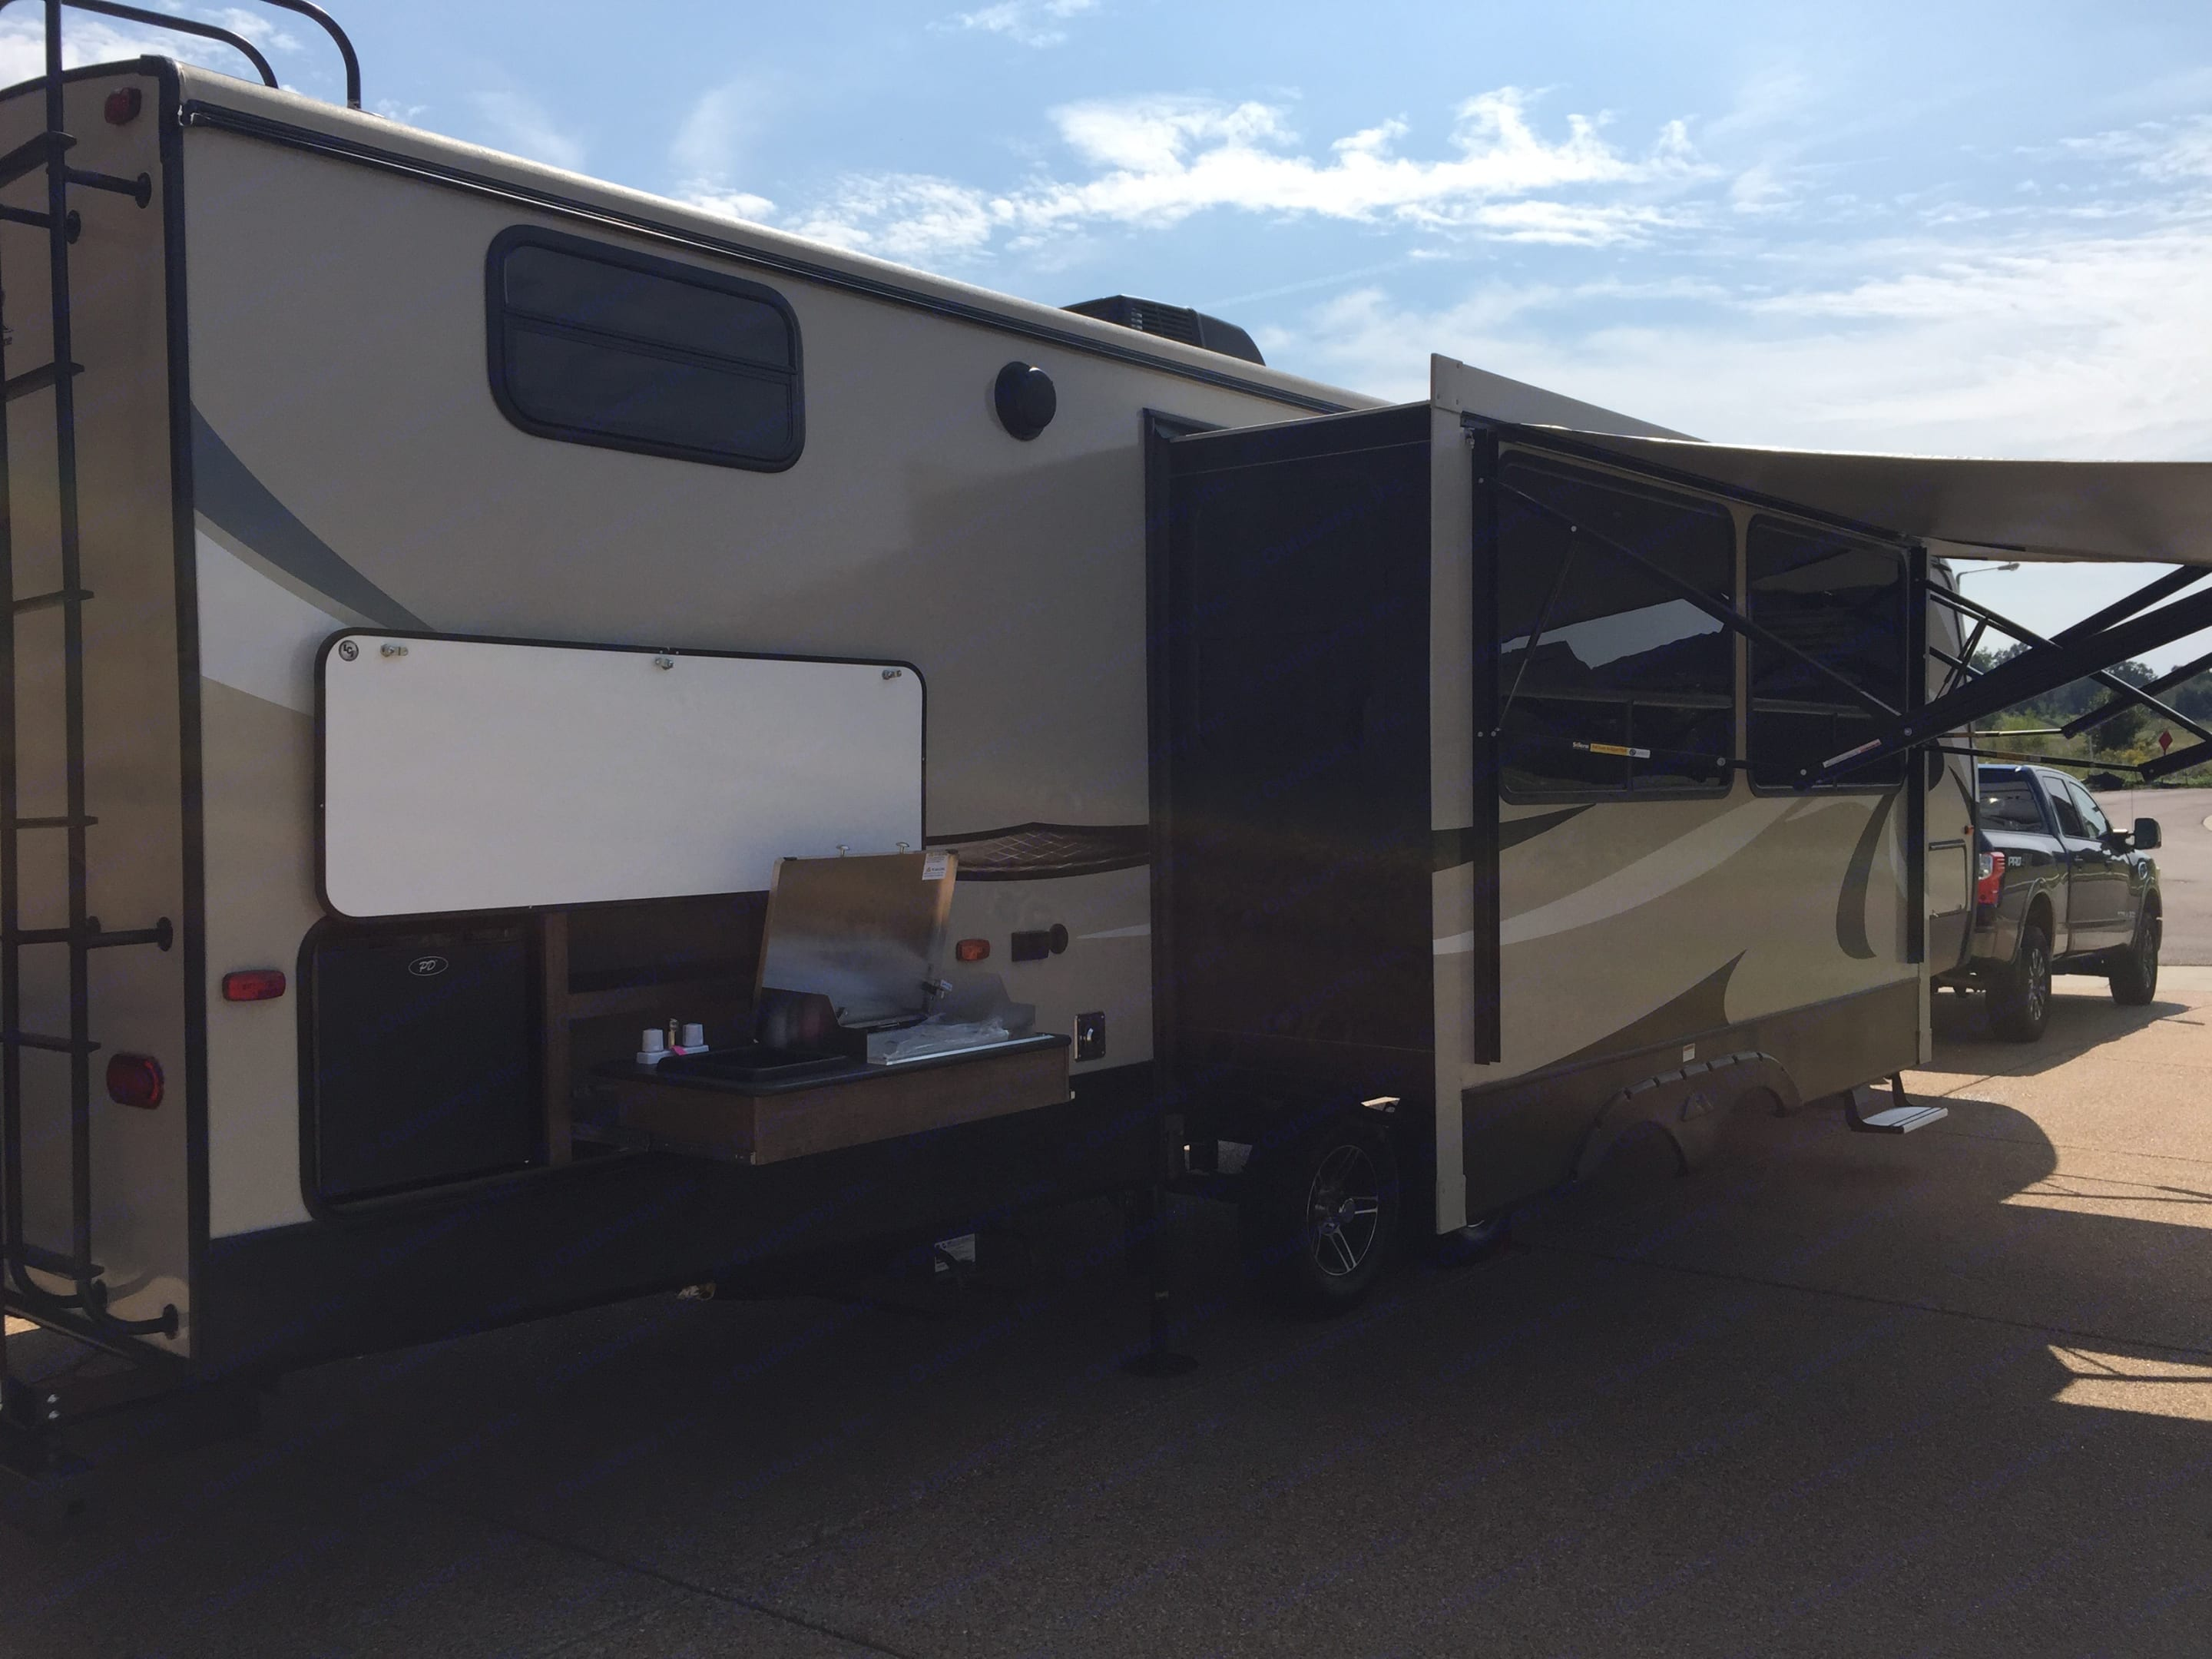 Exterior kitchen with fridge and a gas grill. Keystone Cougar Half-Ton 2018